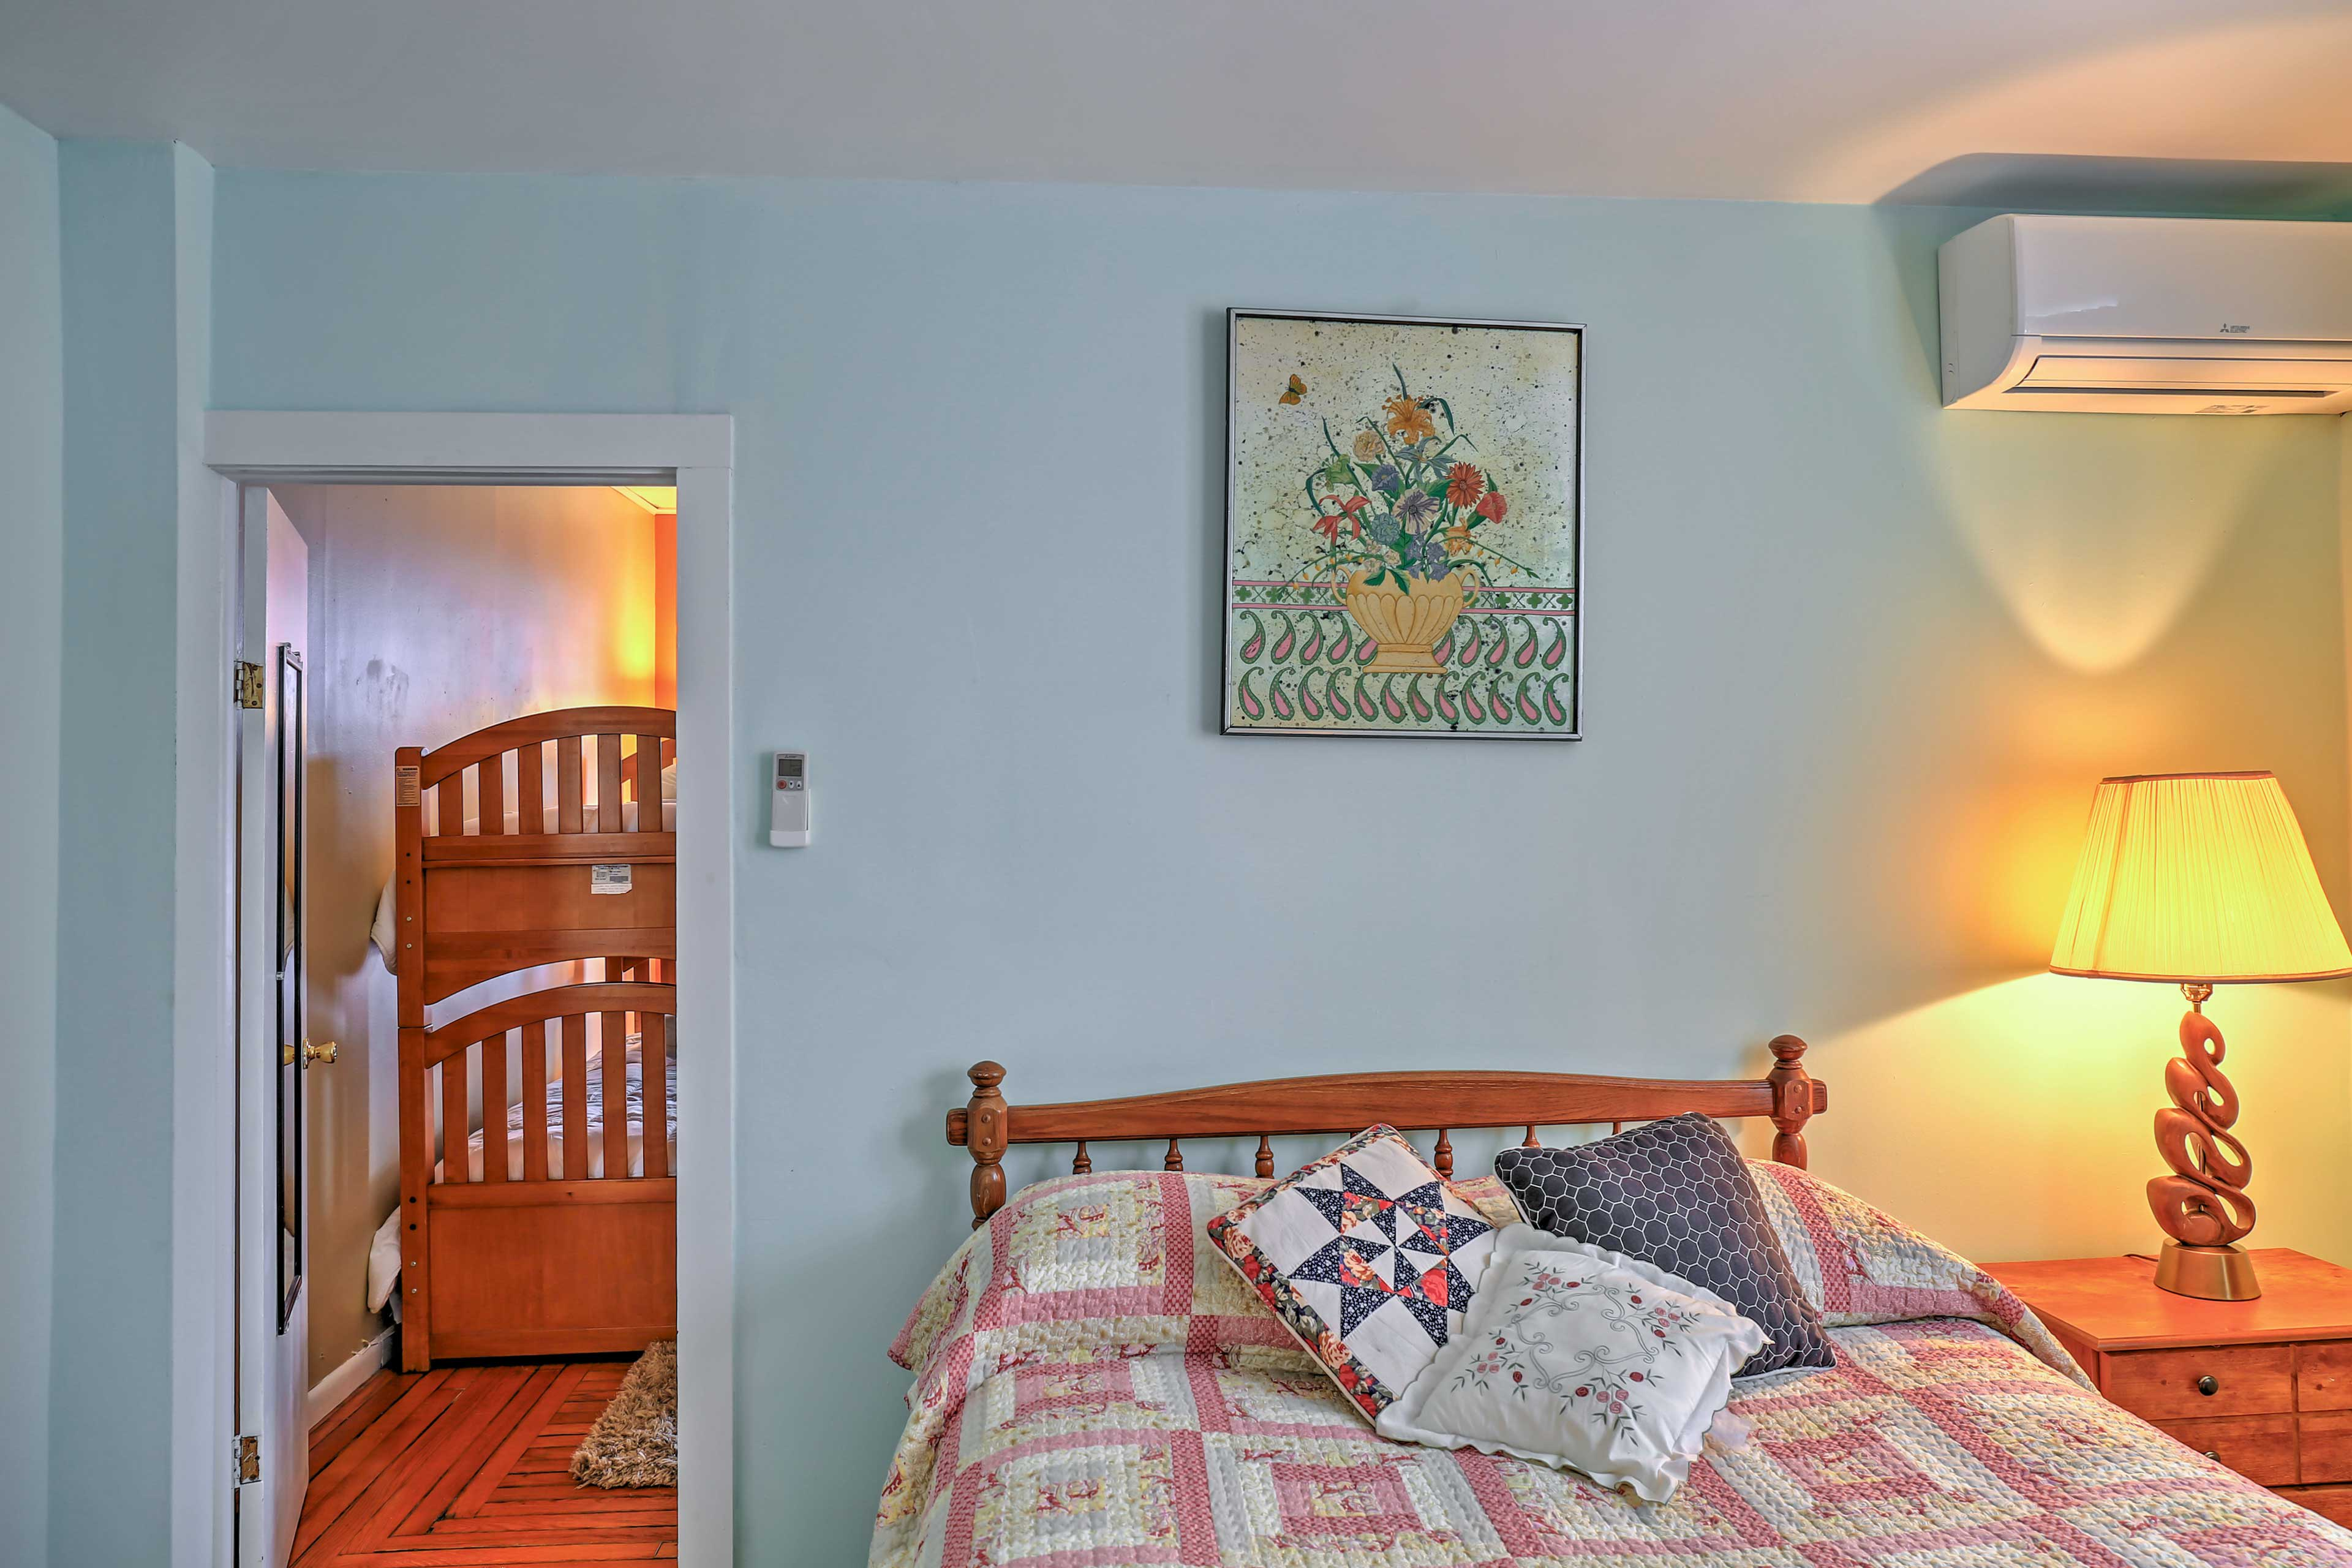 This vacation rental apartment has everything you need for the perfect escape!